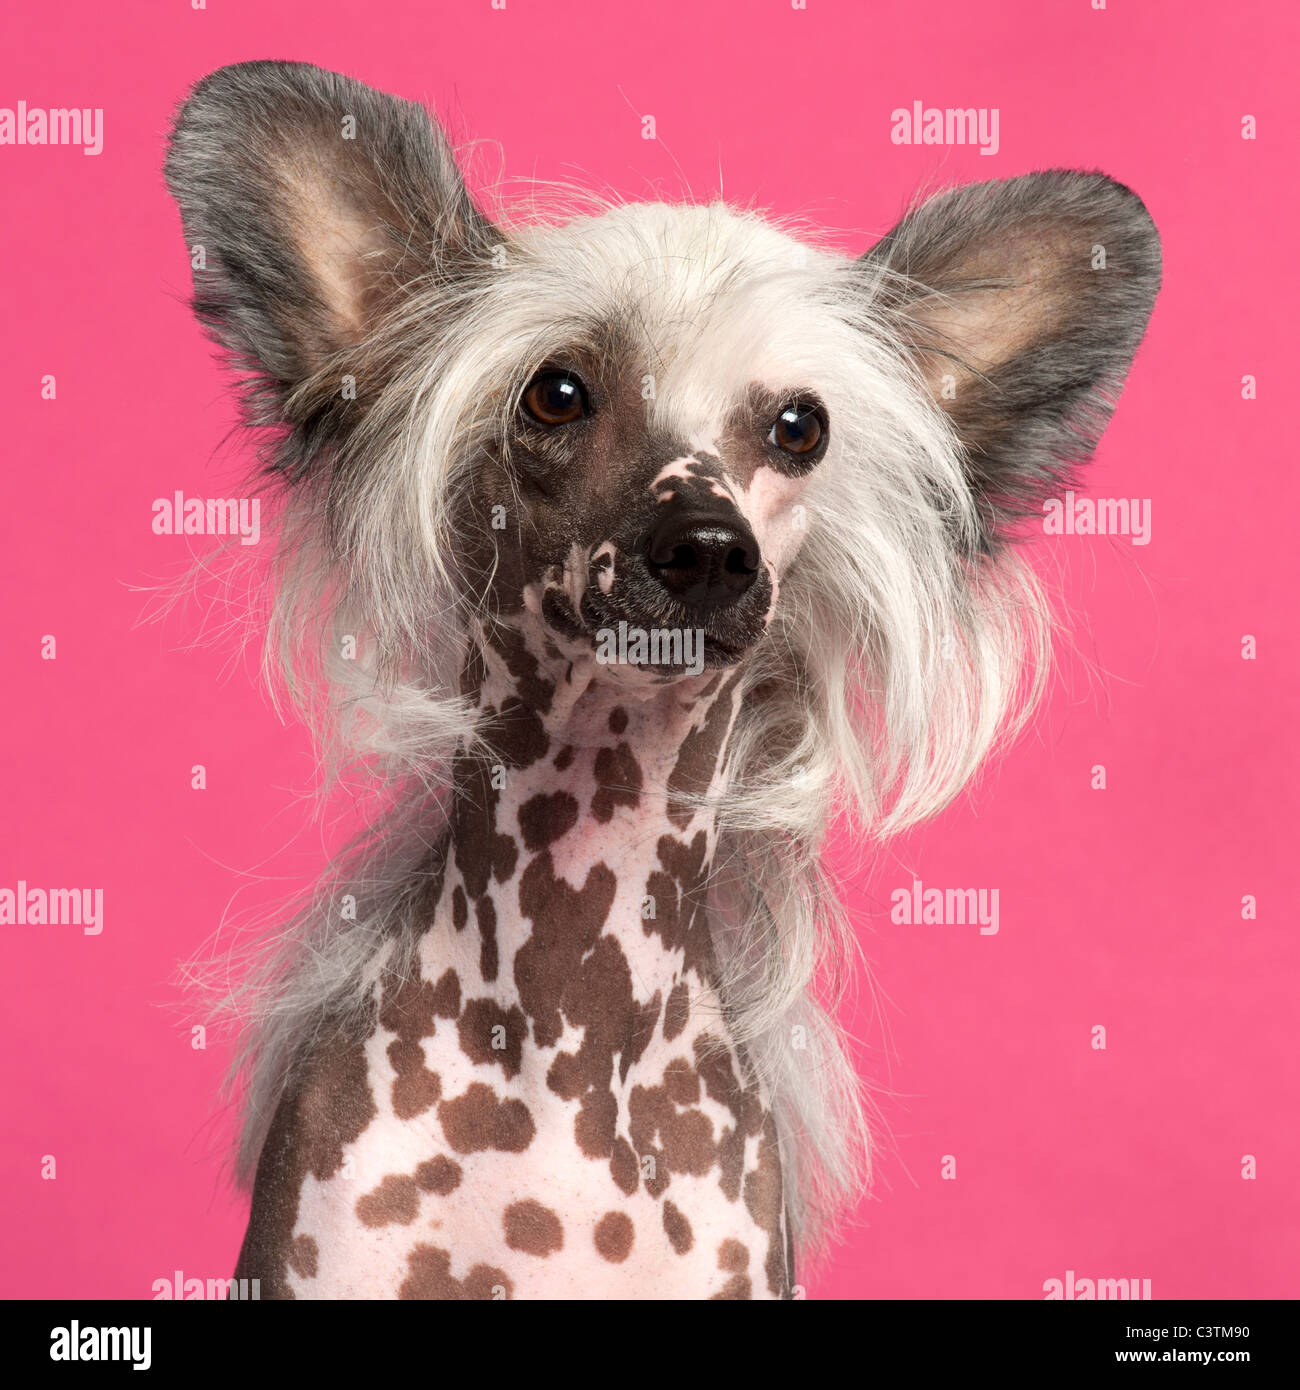 Chinese Crested Dog in front of pink background - Stock Image